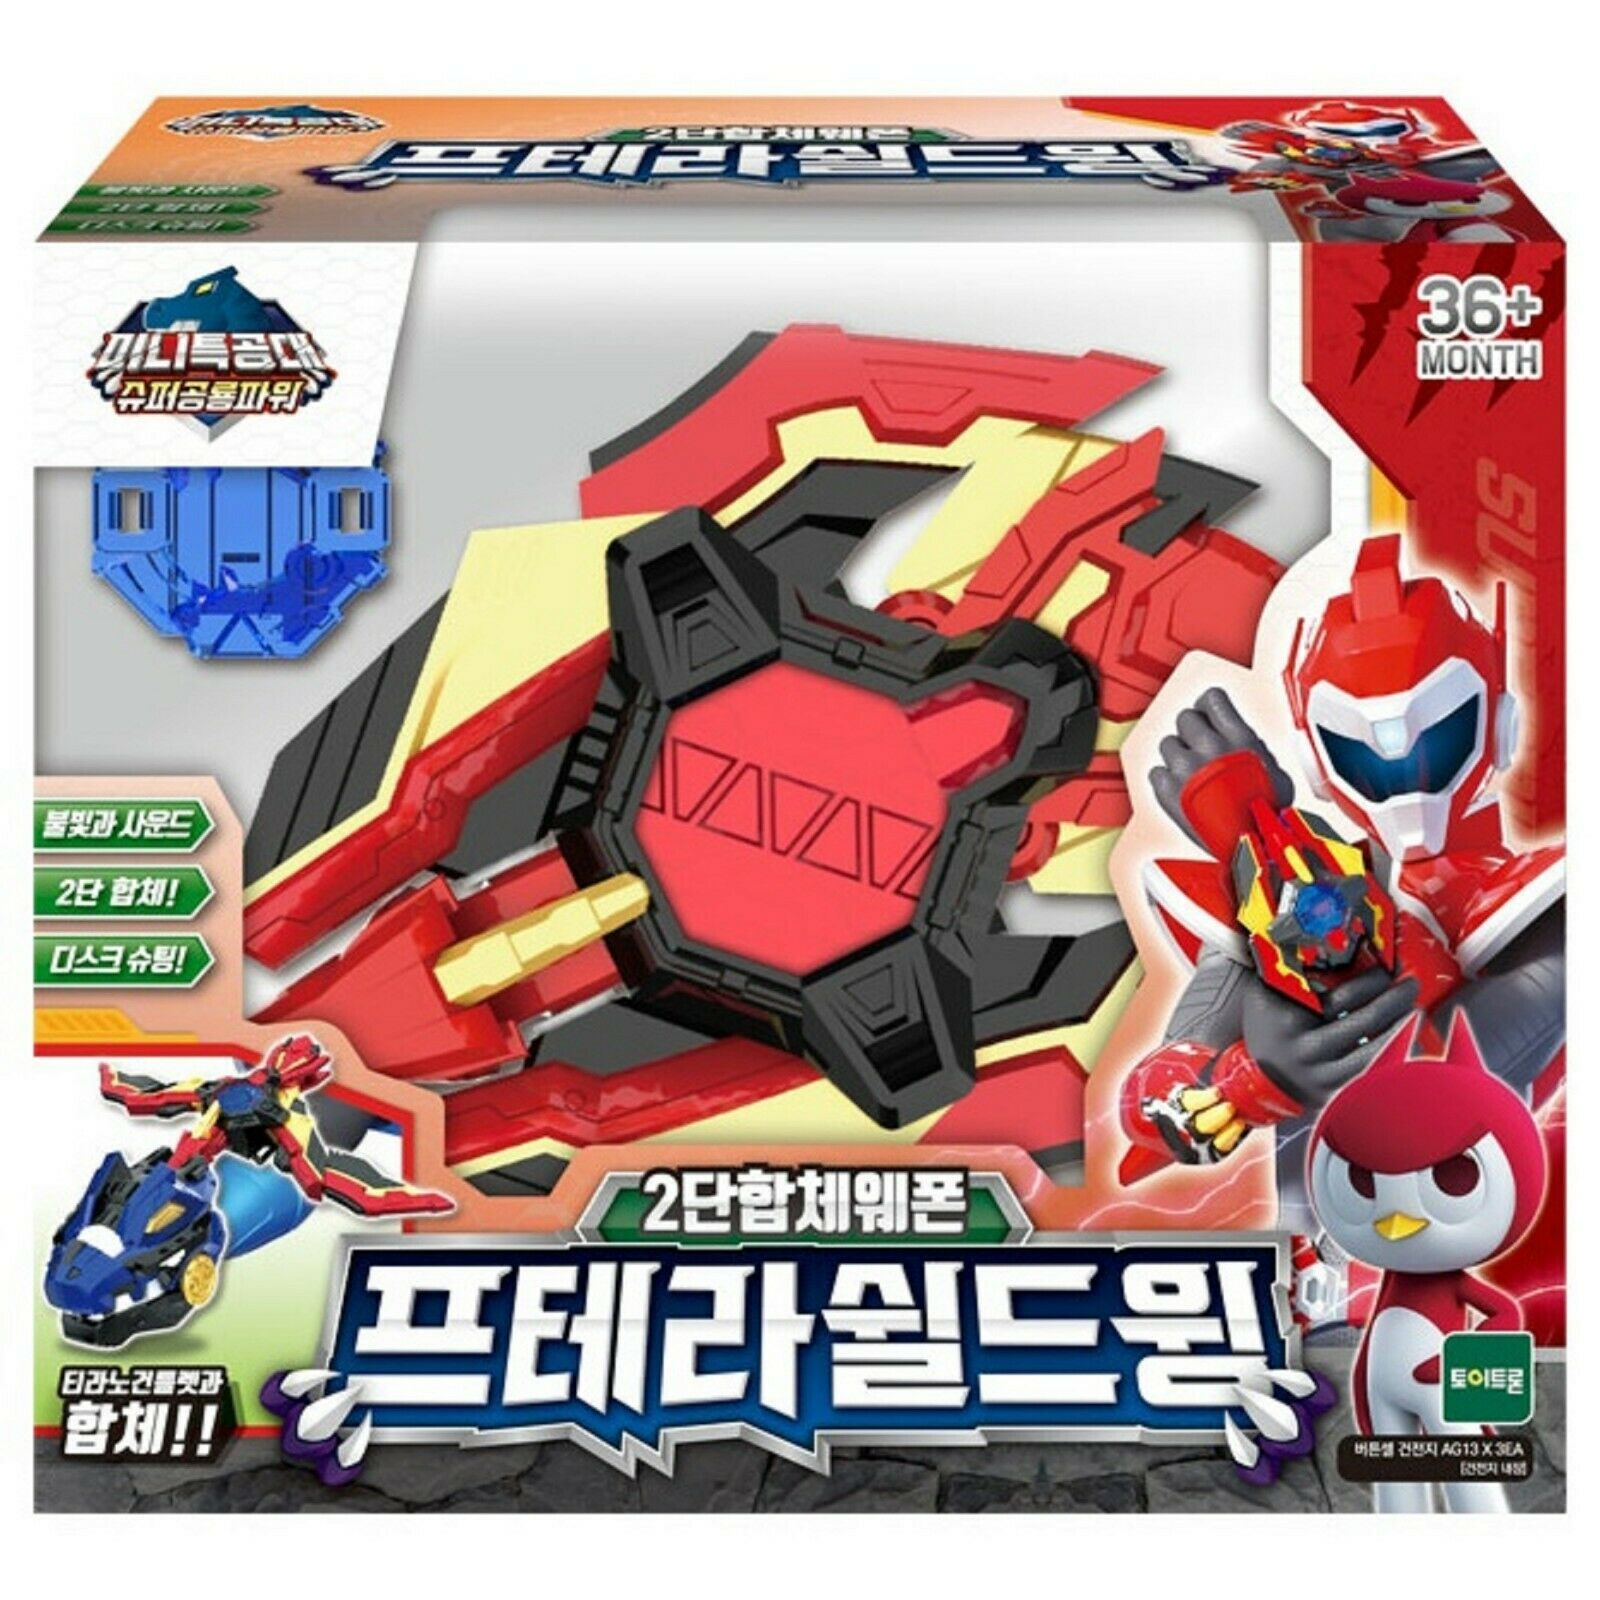 Miniforce Ptera Shield Wing Combined Weapon Super Dinosaur Power Part 2 Toy